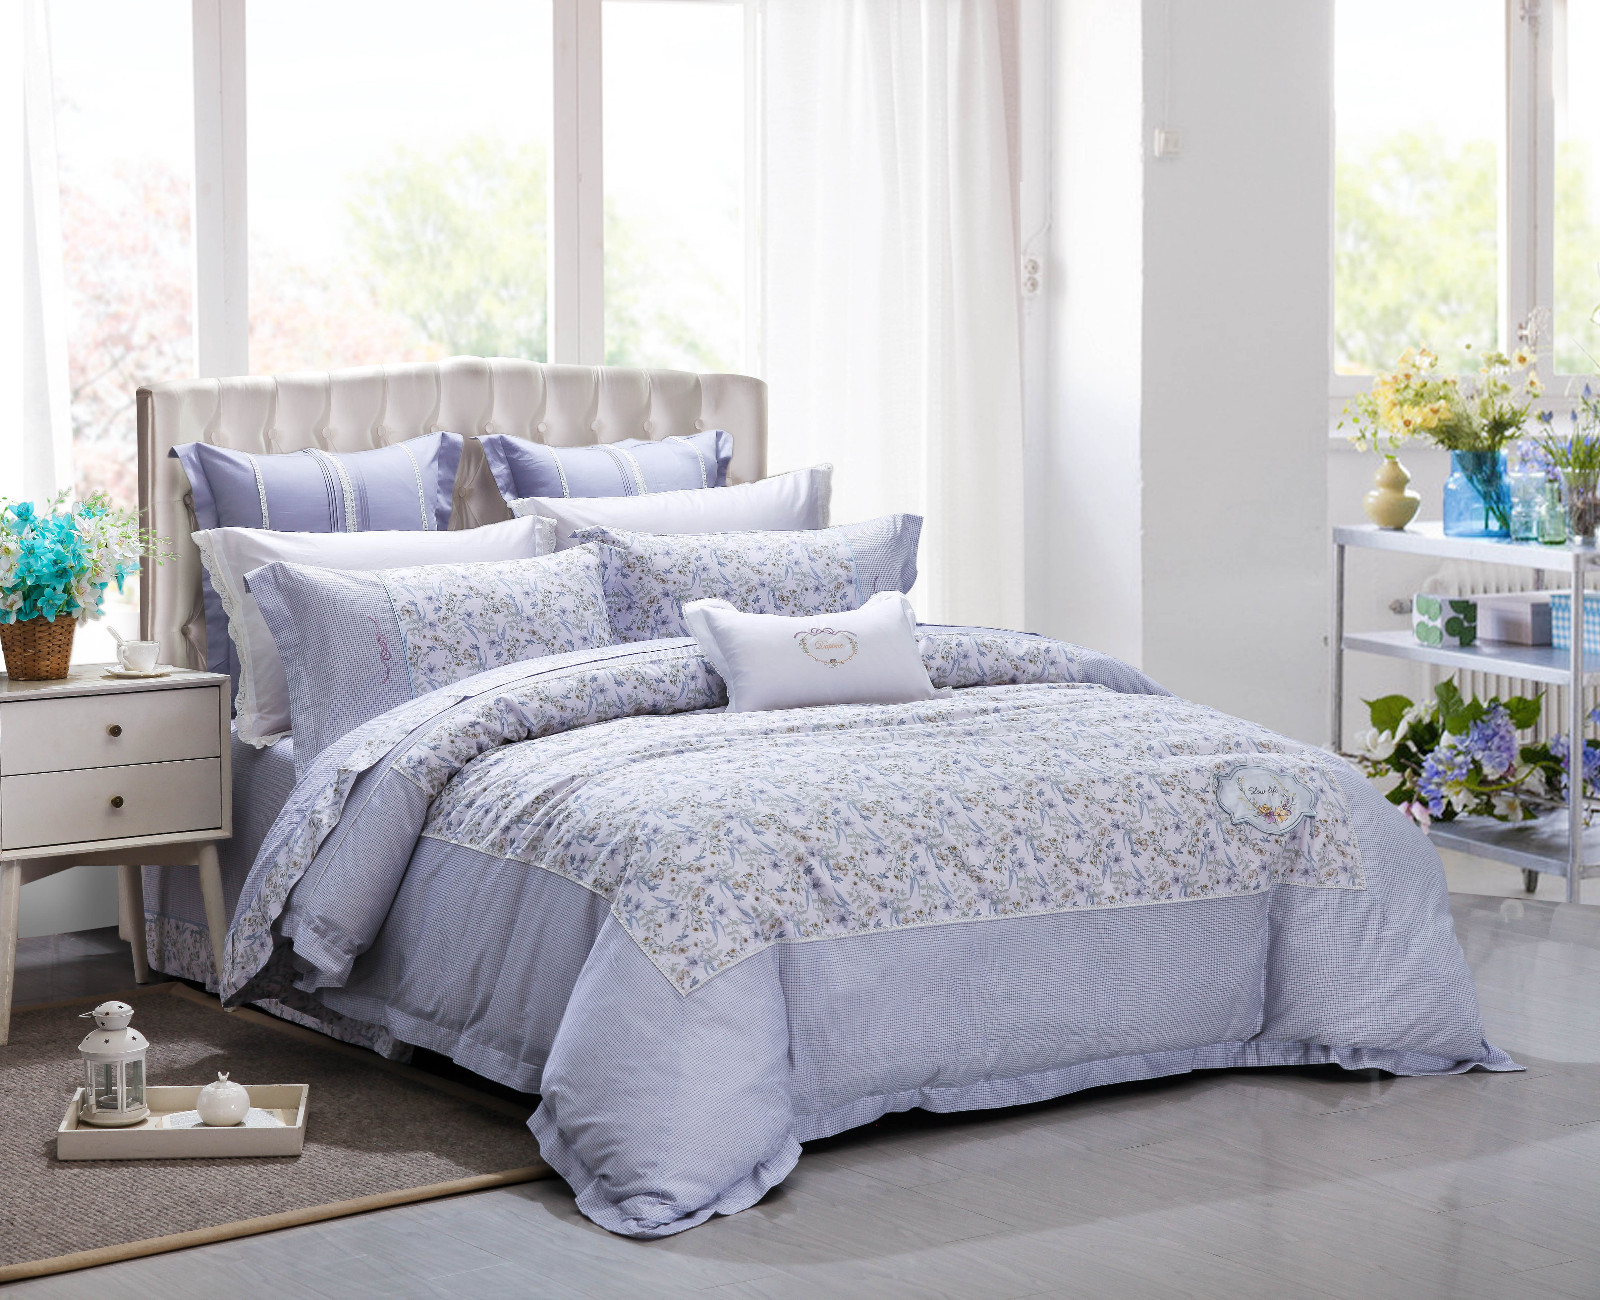 longstaple pattern design Cotton Bedding Sets Daphne